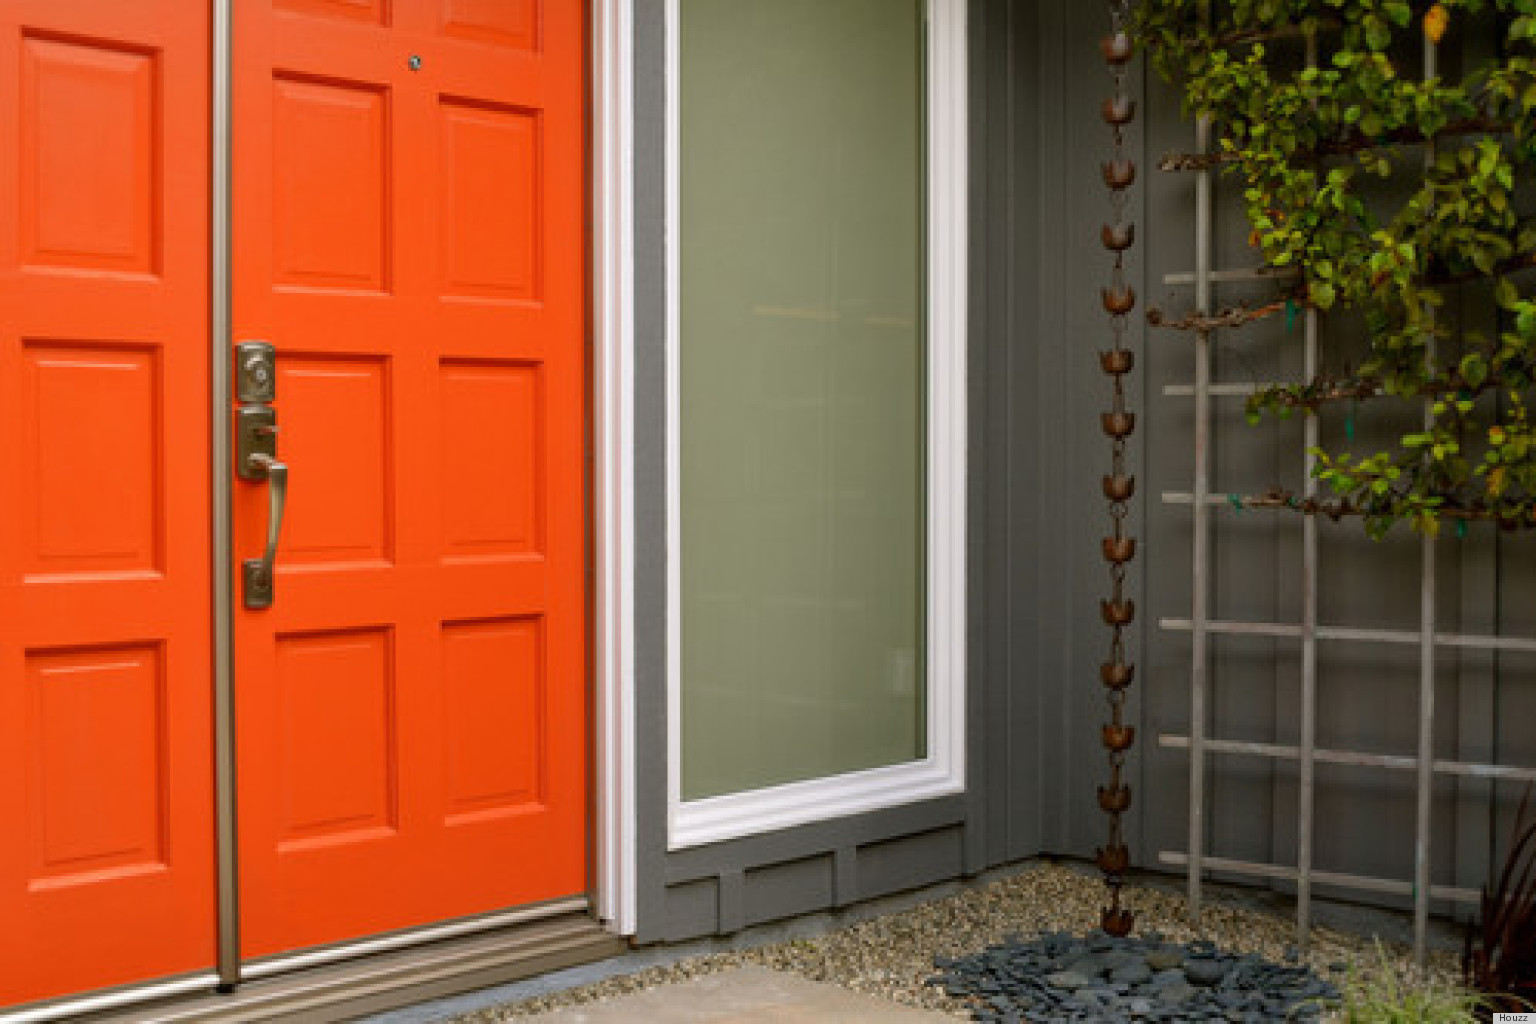 Elegant The 6 Absolute Best Paint Colors For Your Front Door (PHOTOS) | HuffPost Pictures